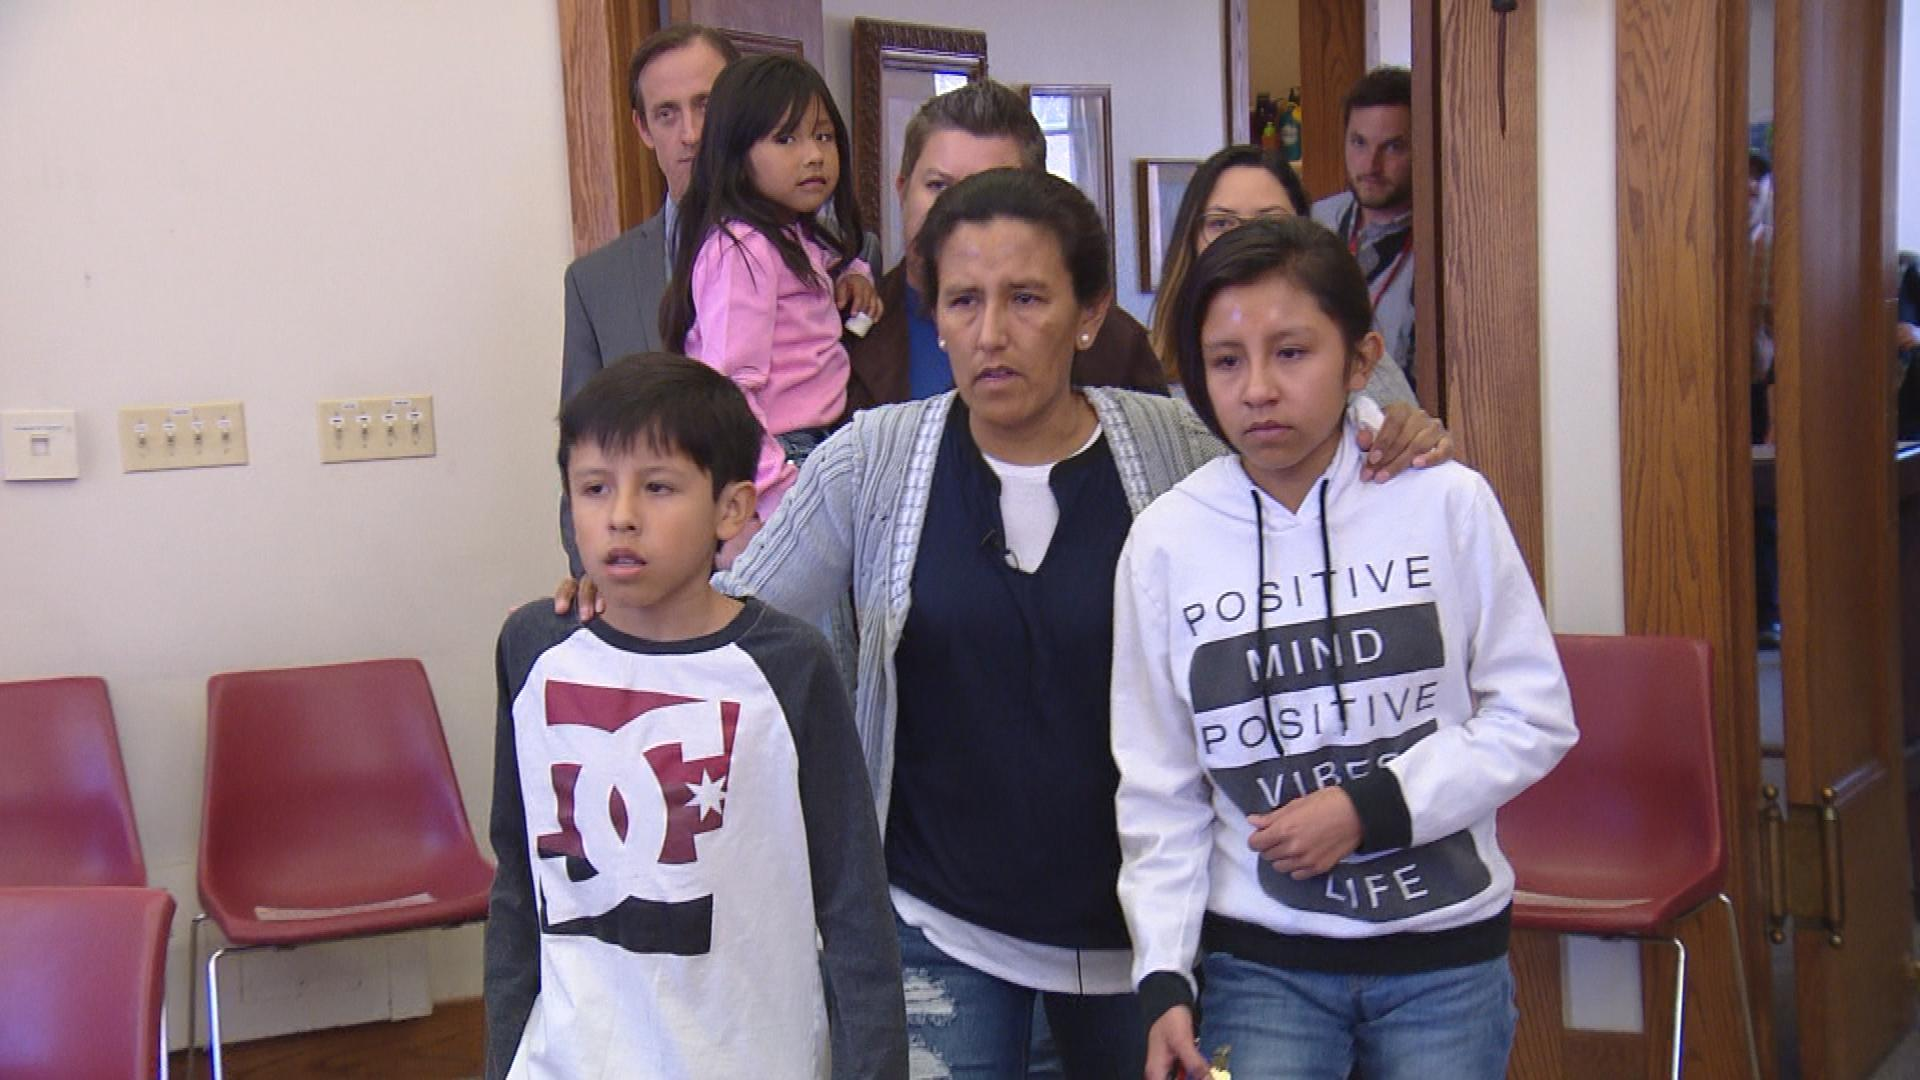 Jeanette Vizguerra with her children (credit: CBS)